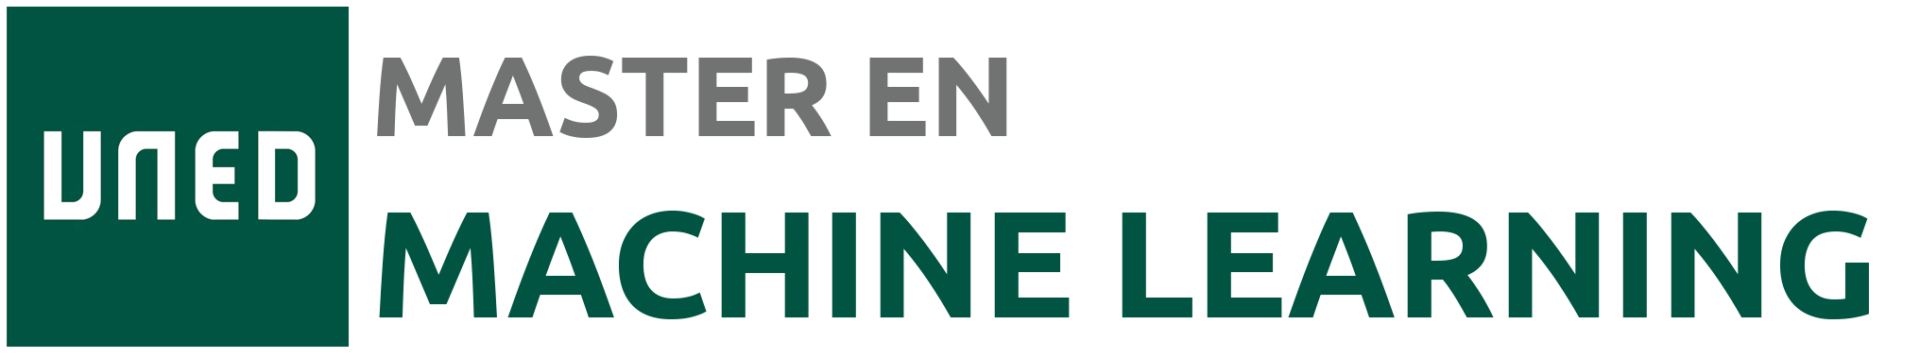 Master en Machine Learning UNED